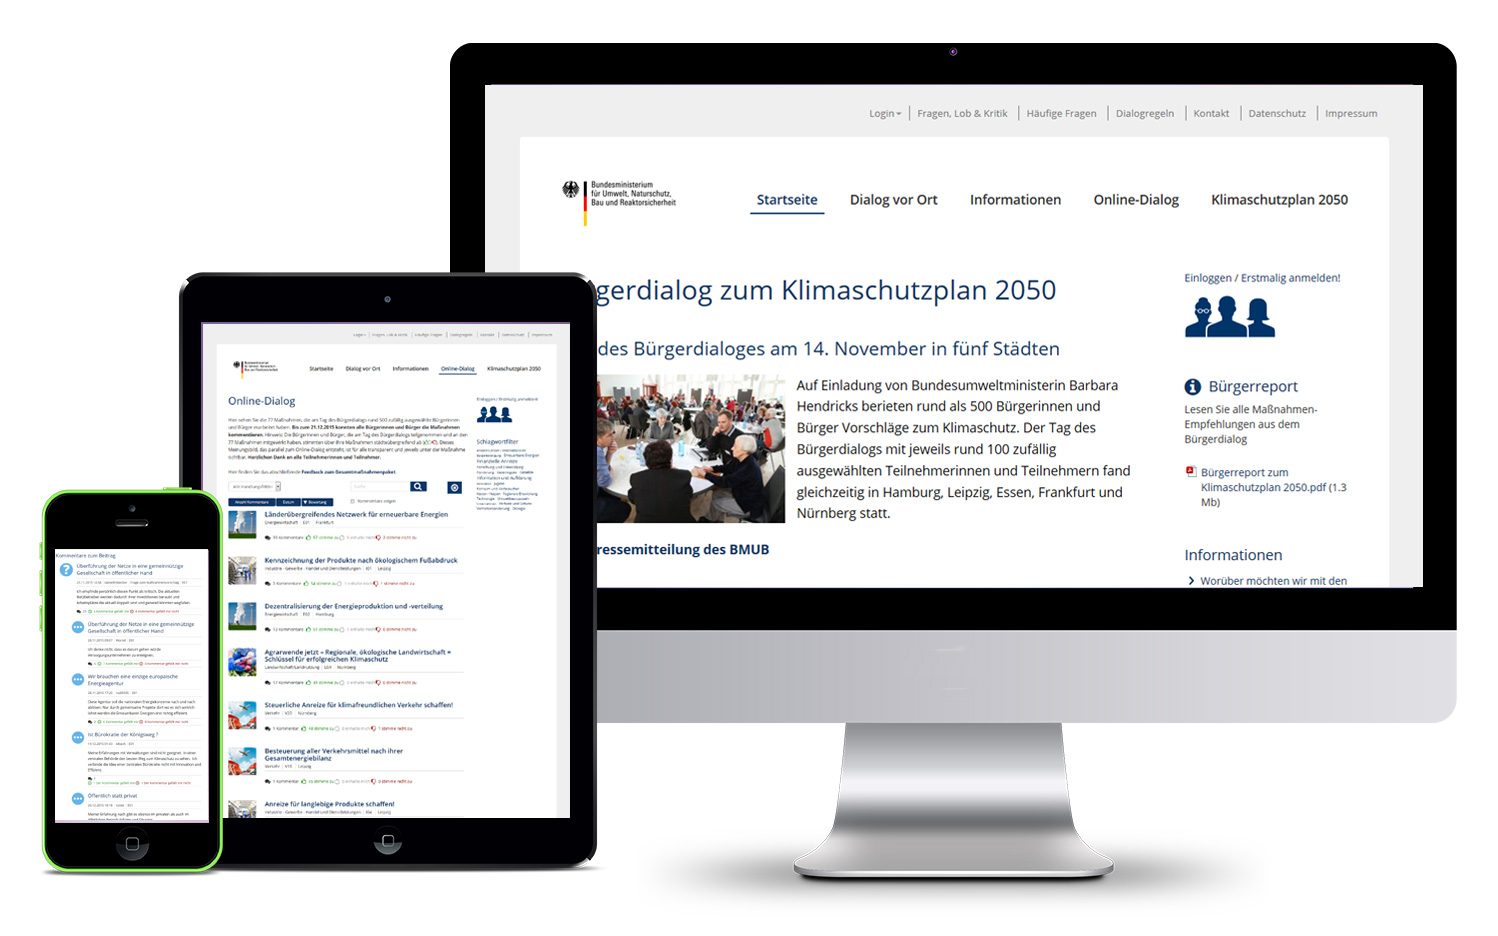 We organise e-participation | ontopica